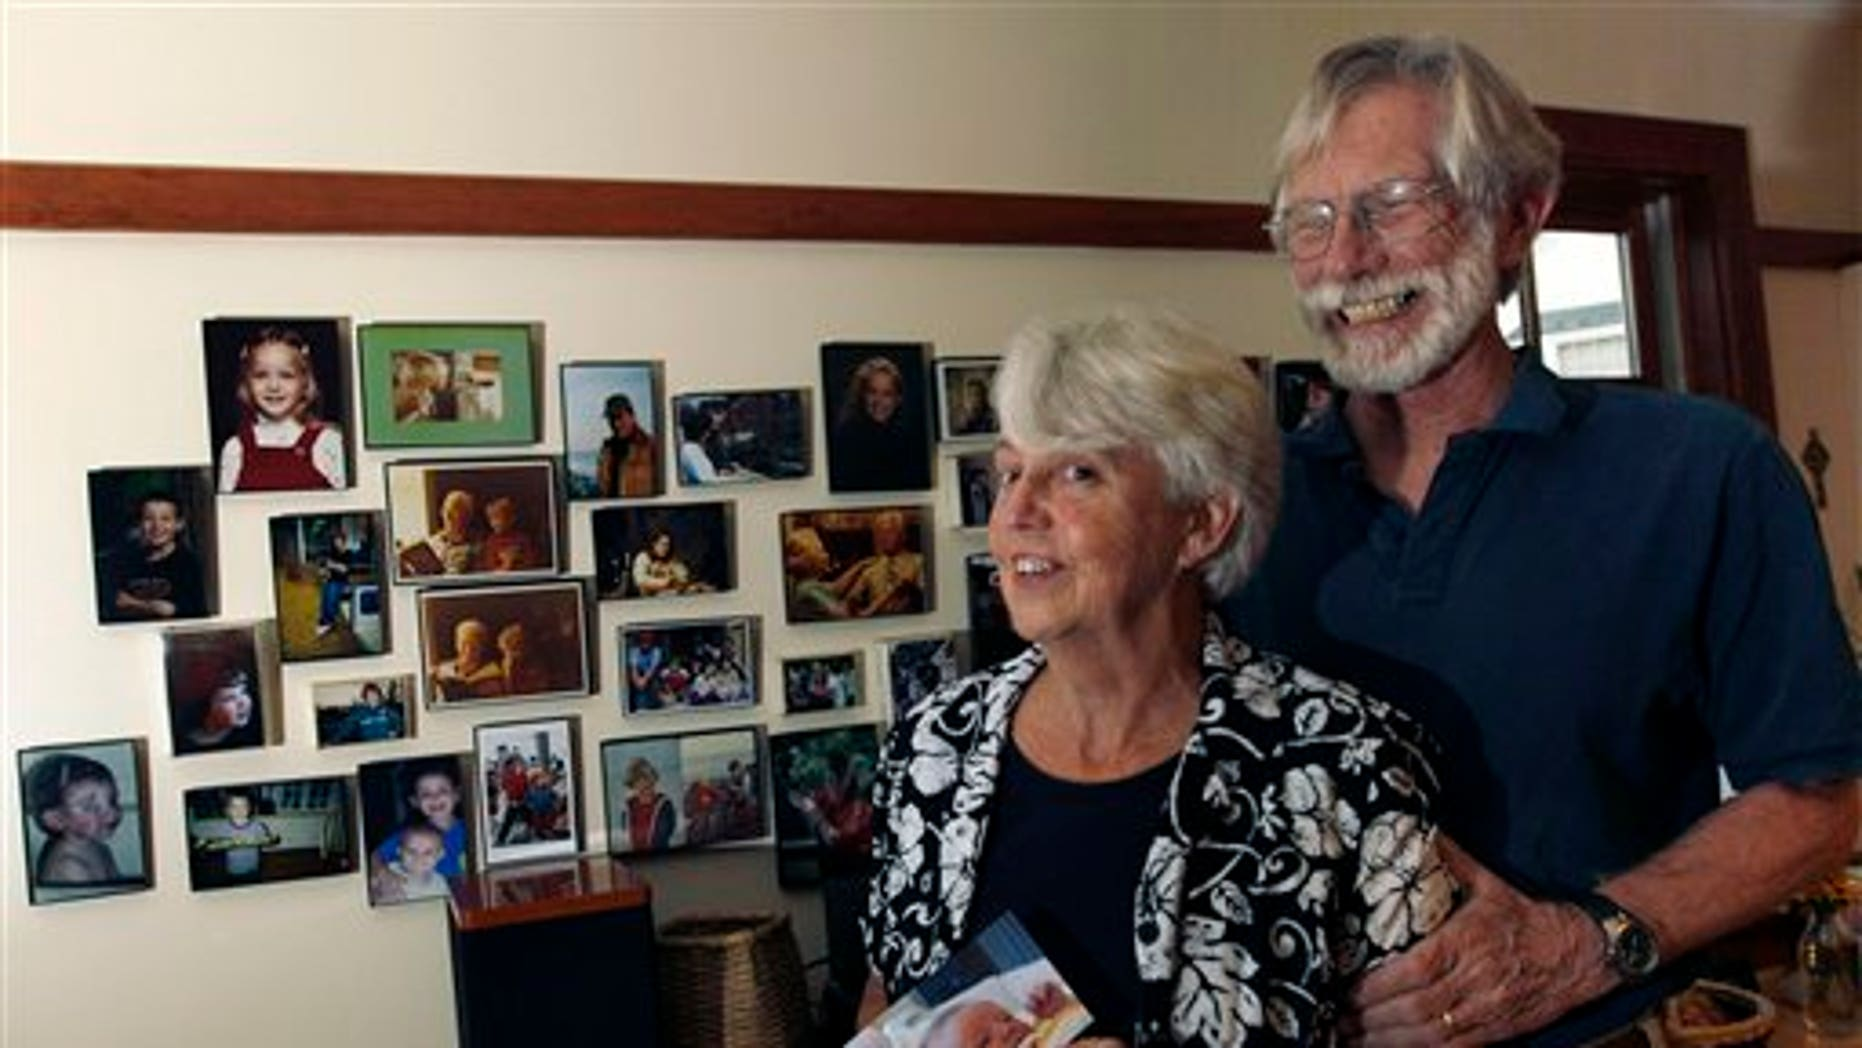 August 24: Eileen and Doug Flockhart laugh as she holds a picture of their seventh grandchild near a wall full of family photos in their home in Exeter, N.H.